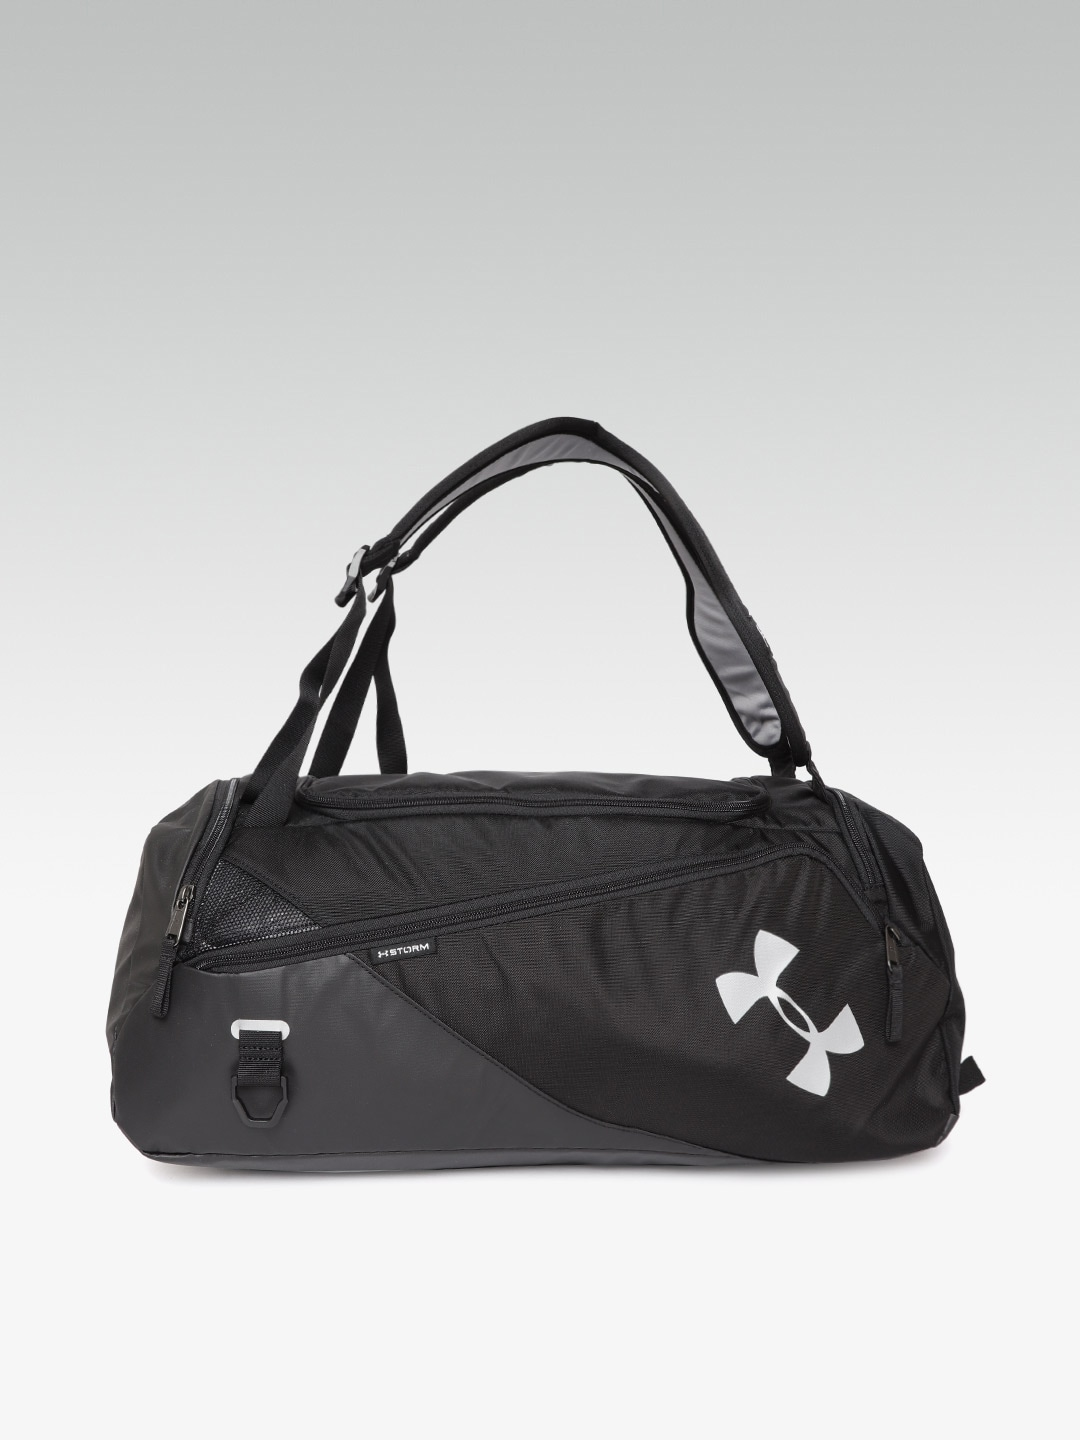 Women Gym Bags - Buy Women Gym Bags online in India 80d942c4a1593